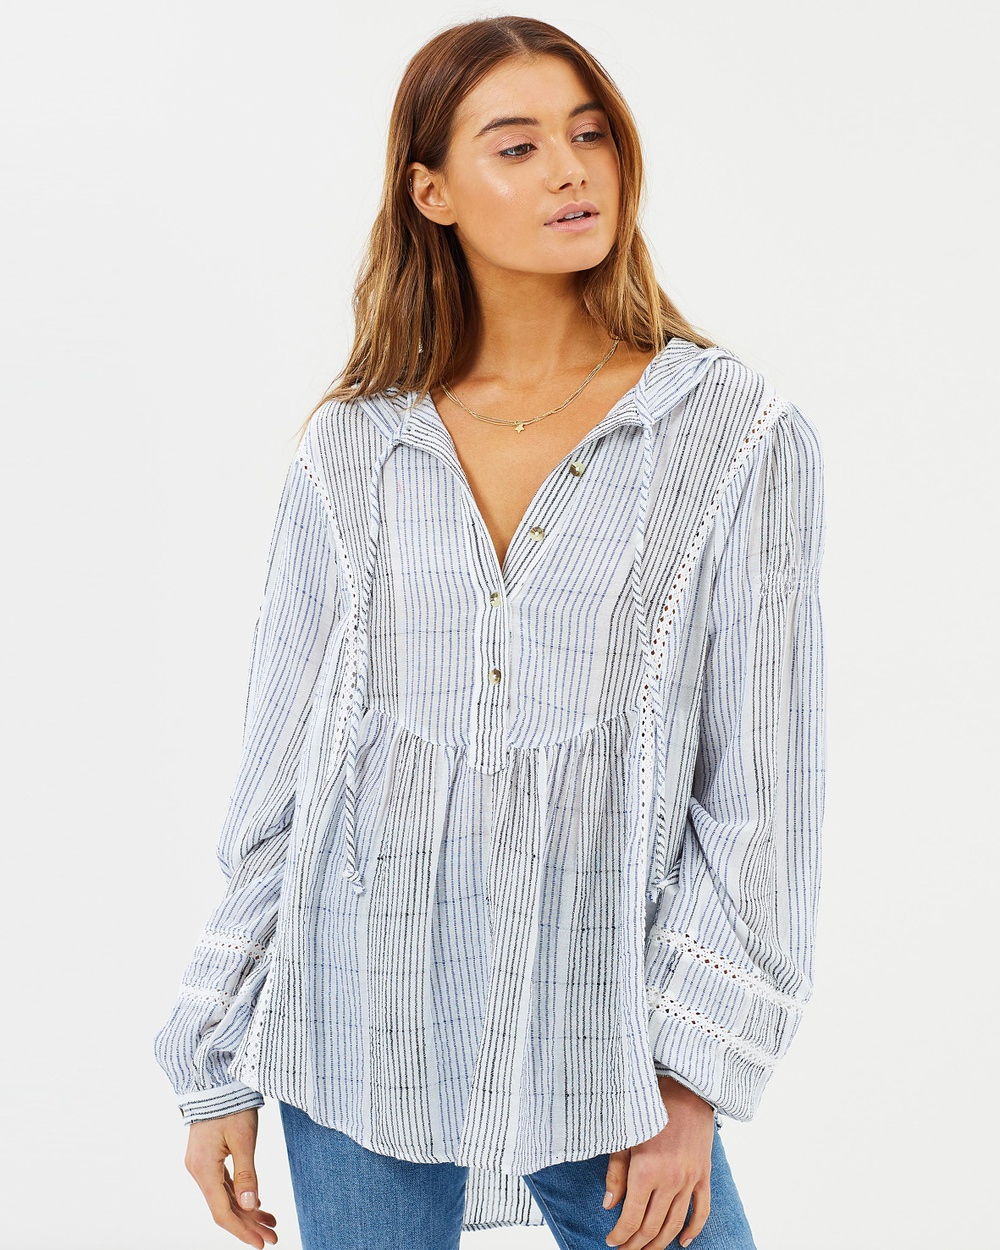 Free People Baja Babe Striped Pullover Tops Blue Baja Babe Striped Pullover